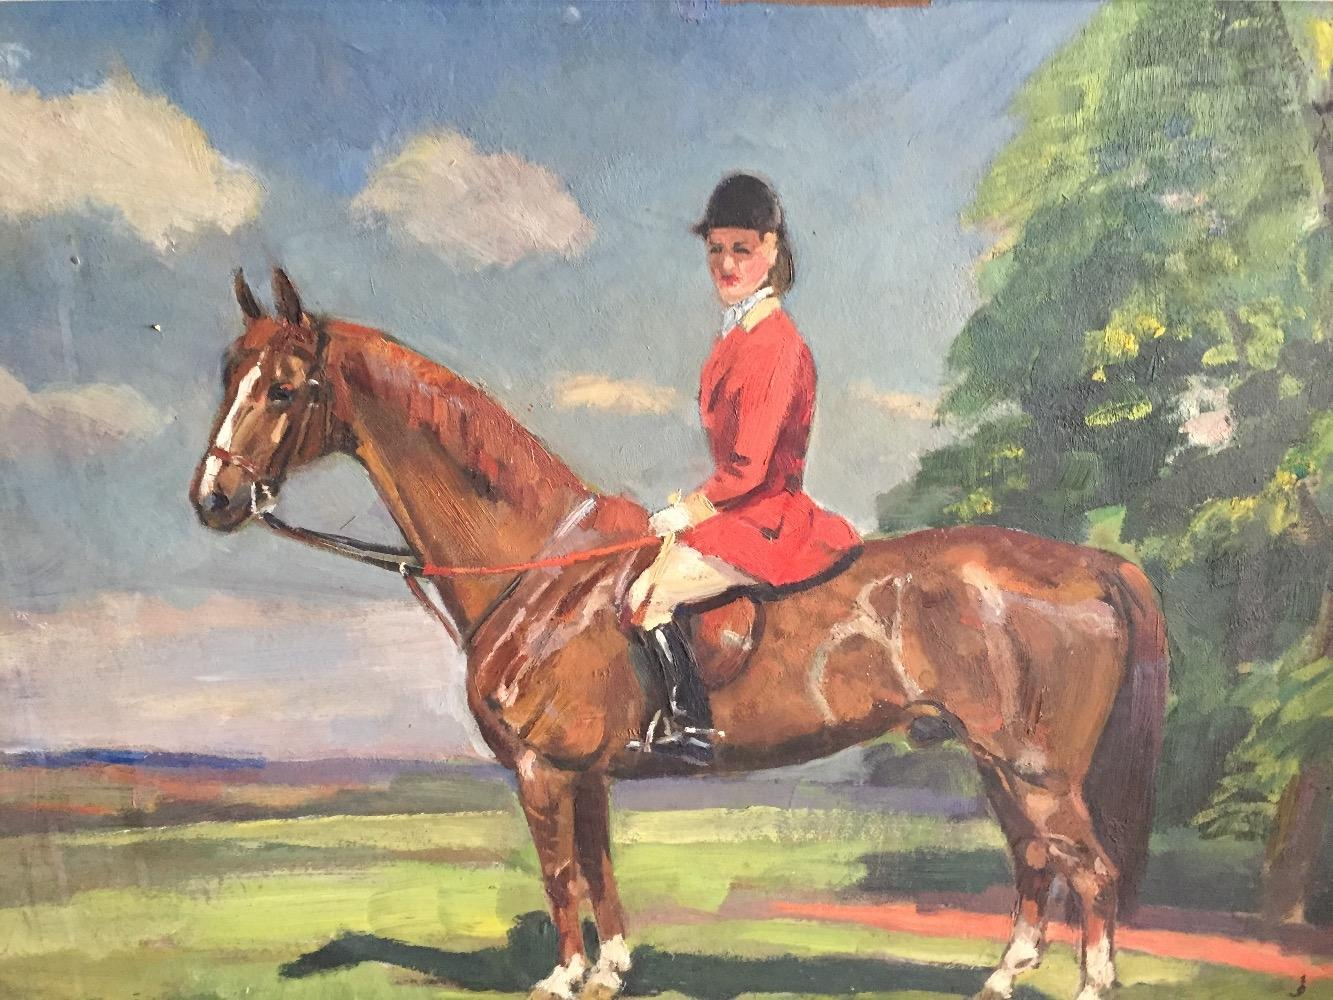 The female jockey